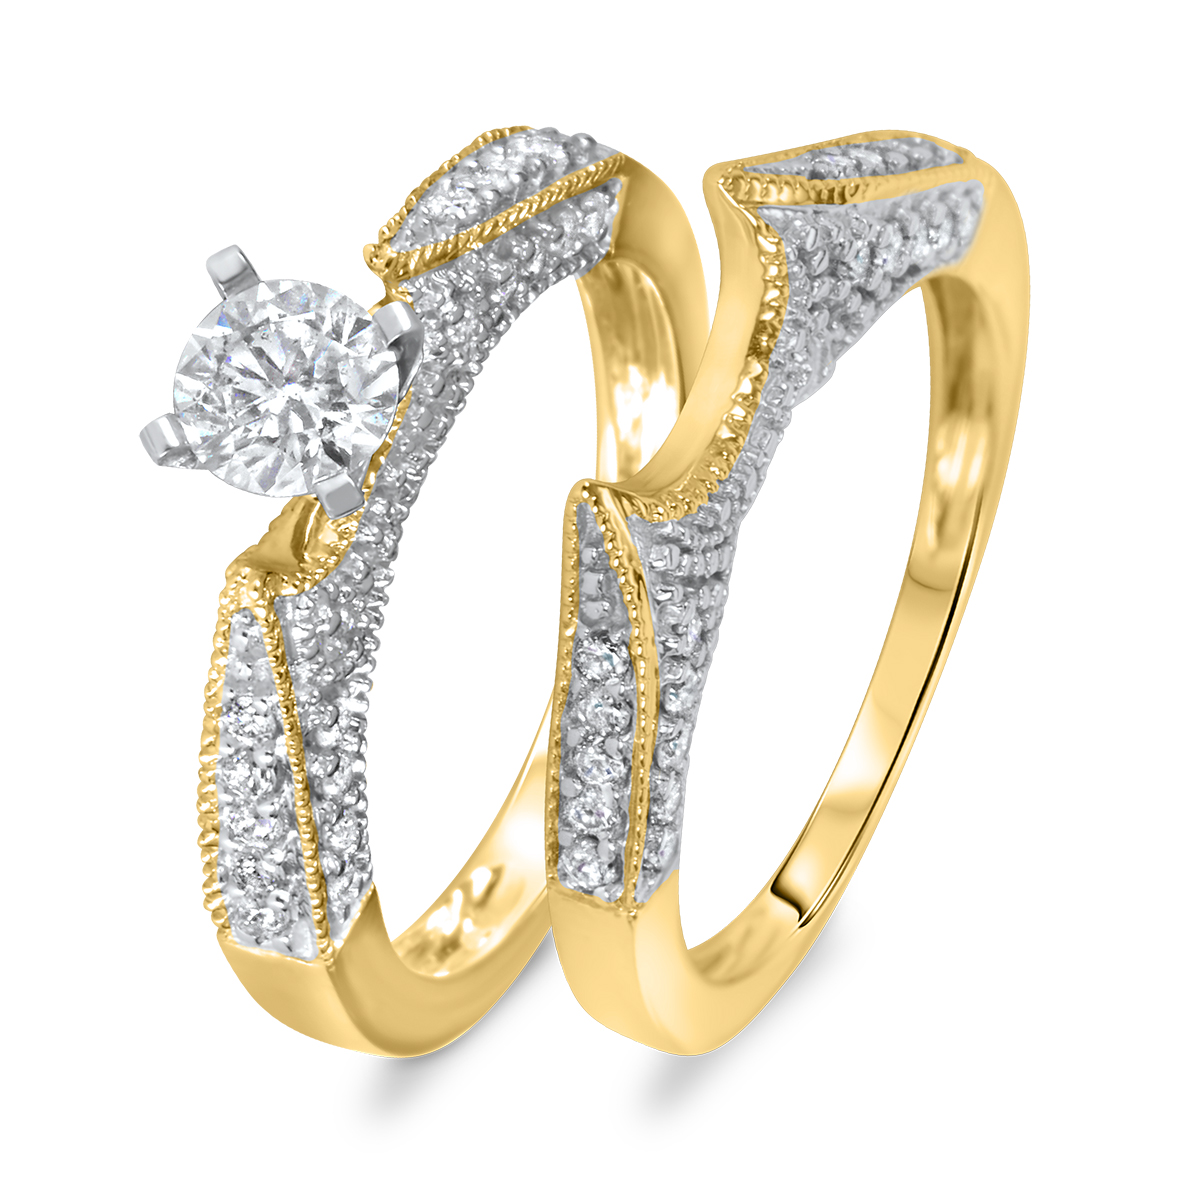 1 ct t w diamond women 39 s bridal wedding ring set 14k yellow gold my trio rings br103y14k r050. Black Bedroom Furniture Sets. Home Design Ideas